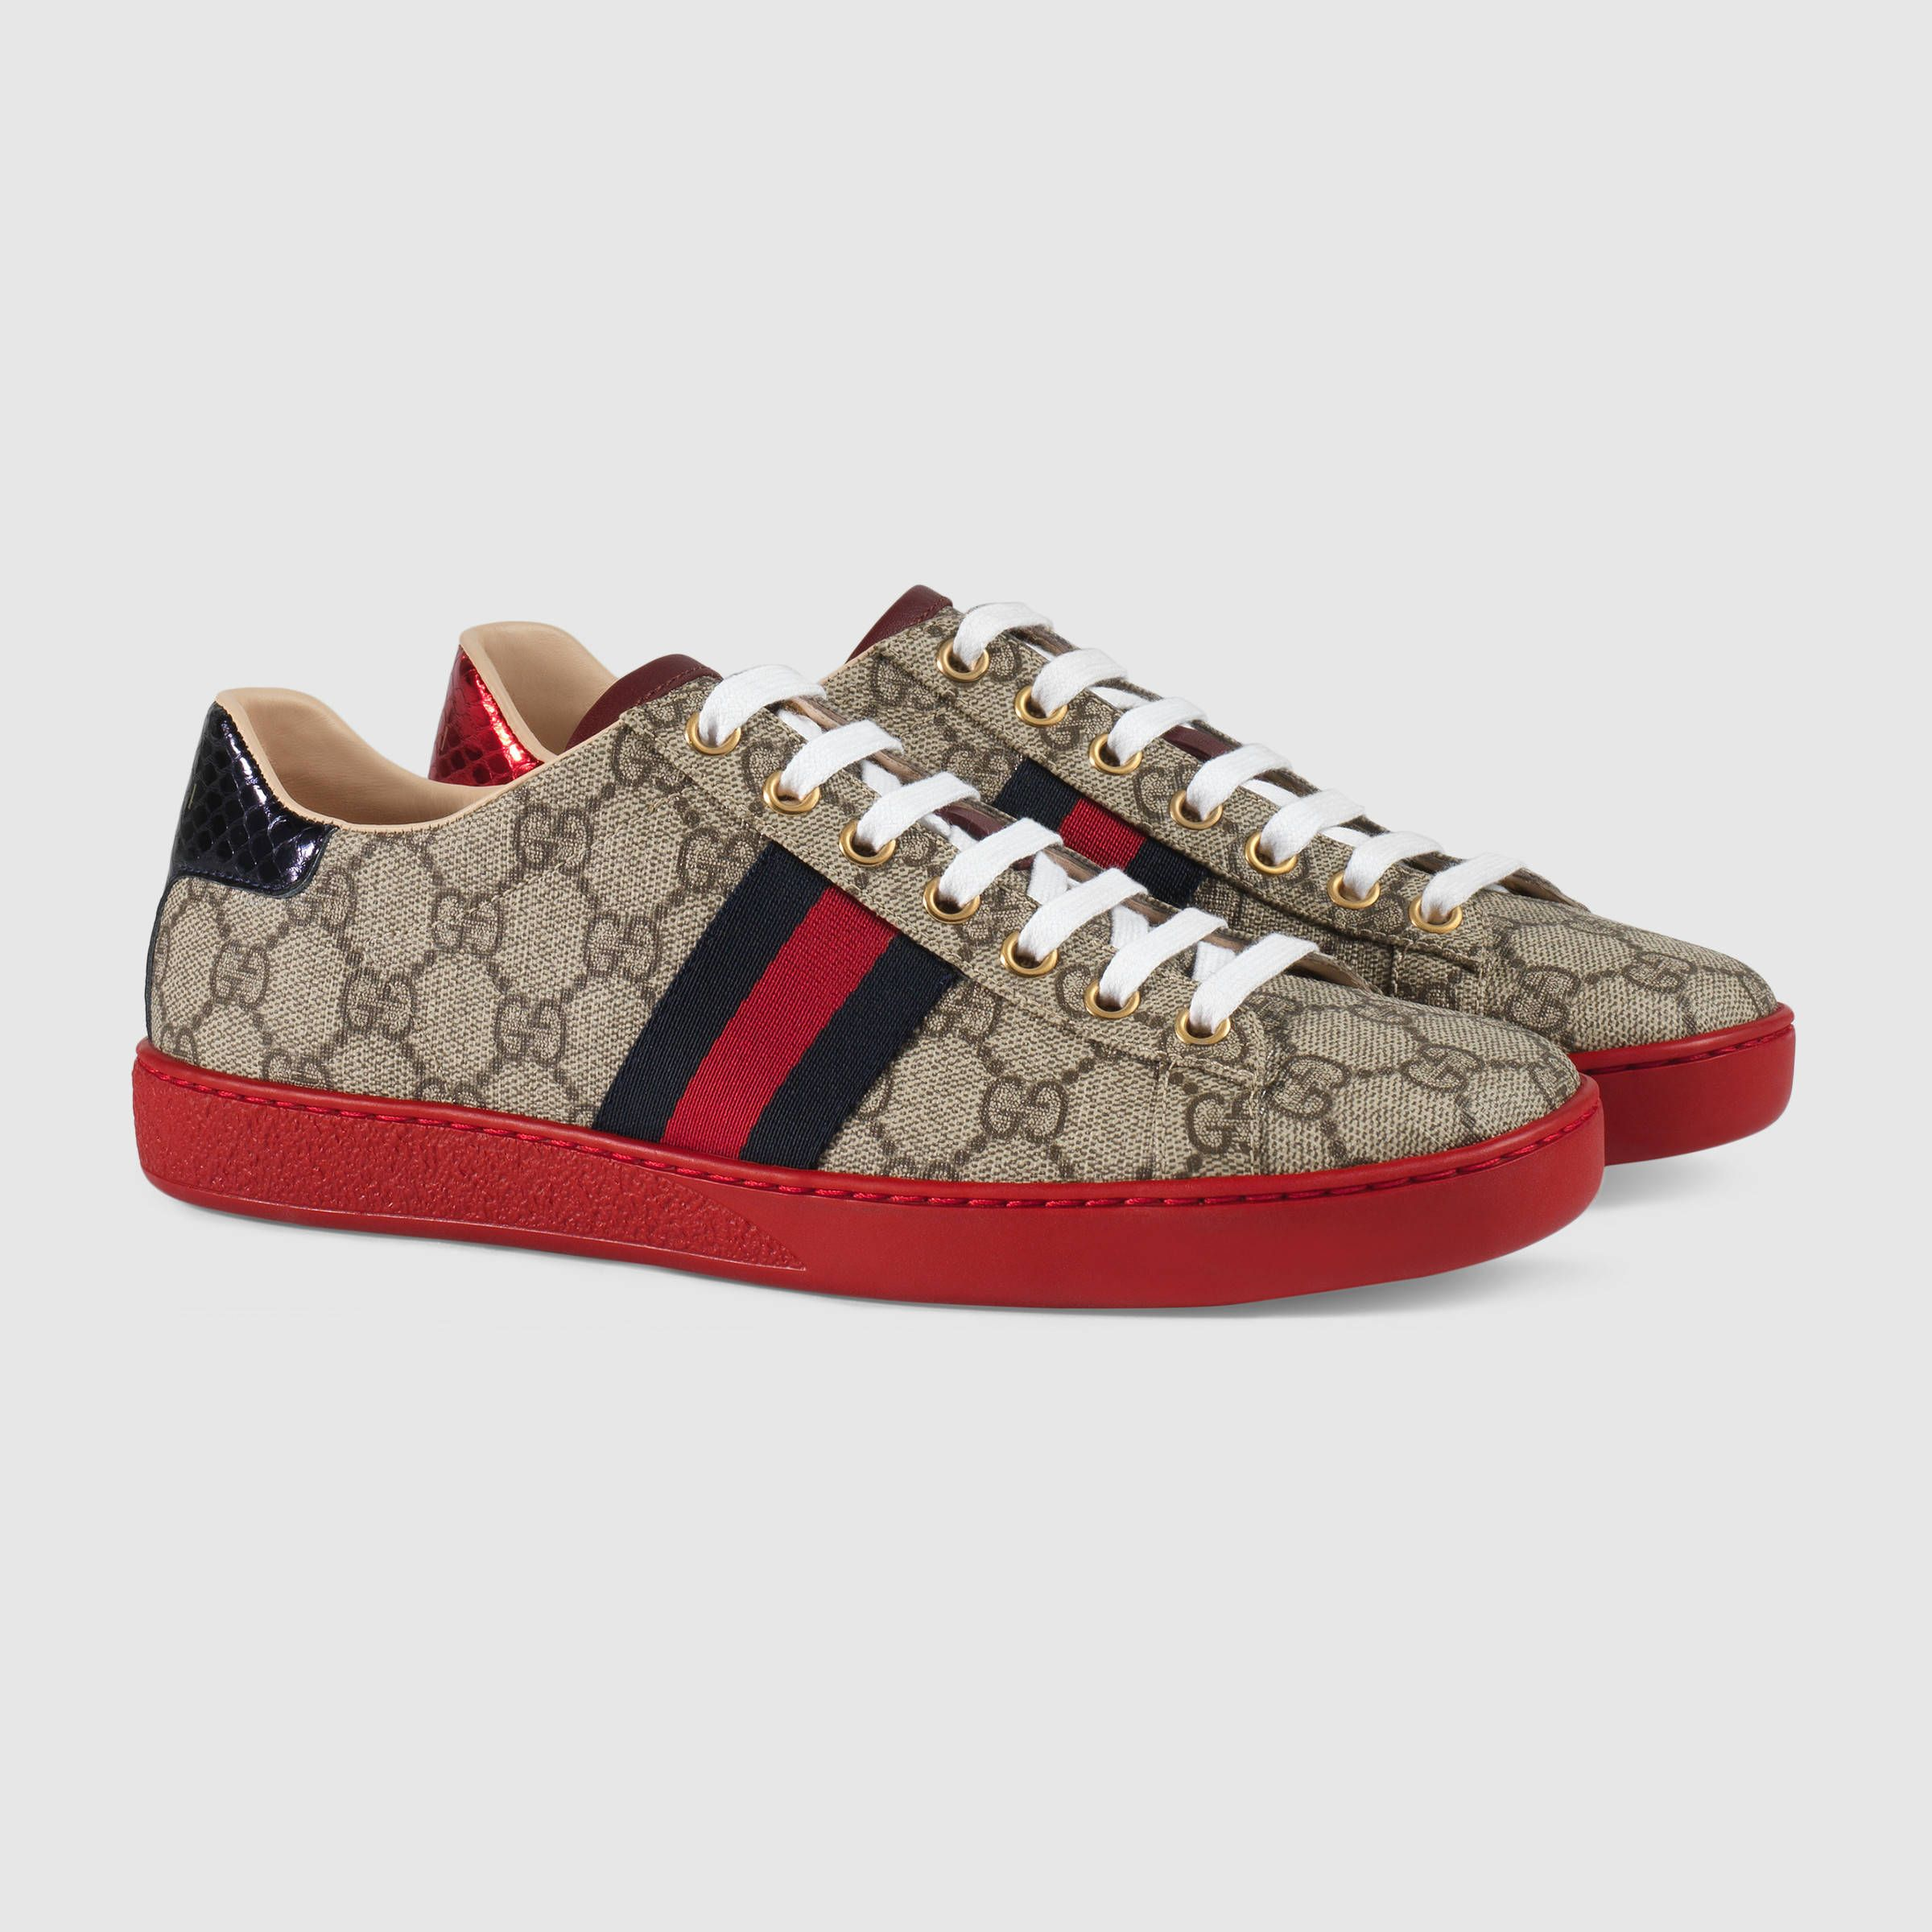 58a80a4f4 Gucci Ace GG Supreme sneaker Detail 2 | SNEAKERS THAT ARE NOT JUST ...